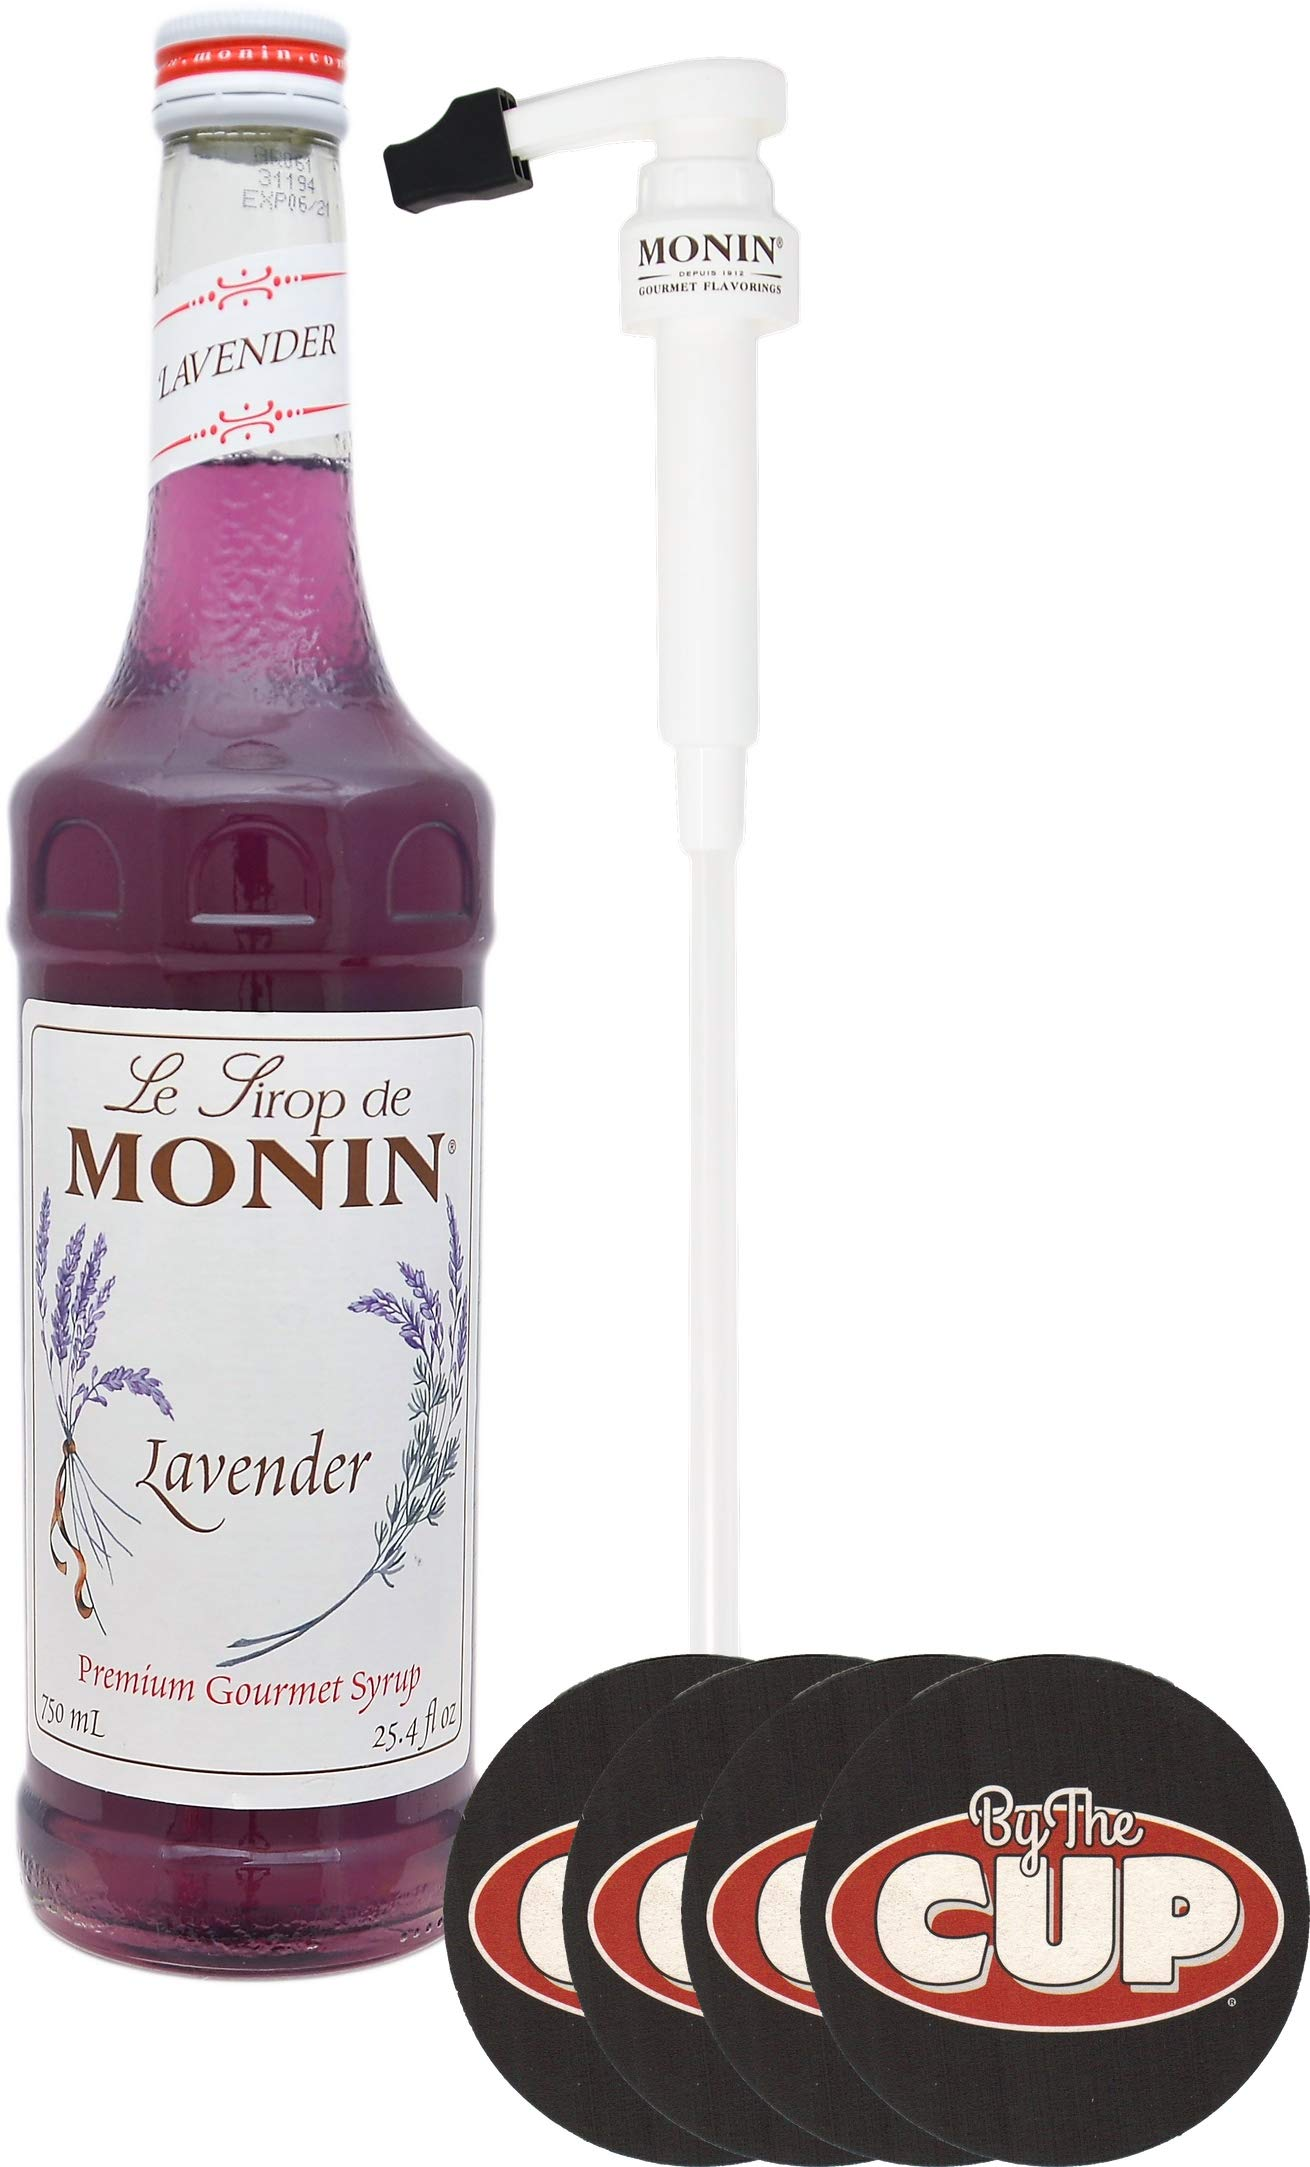 Monin Lavender Coffee Flavoring Syrup, 750 ML Bottle, with a Set of By The Cup Coasters and Syrup Pump